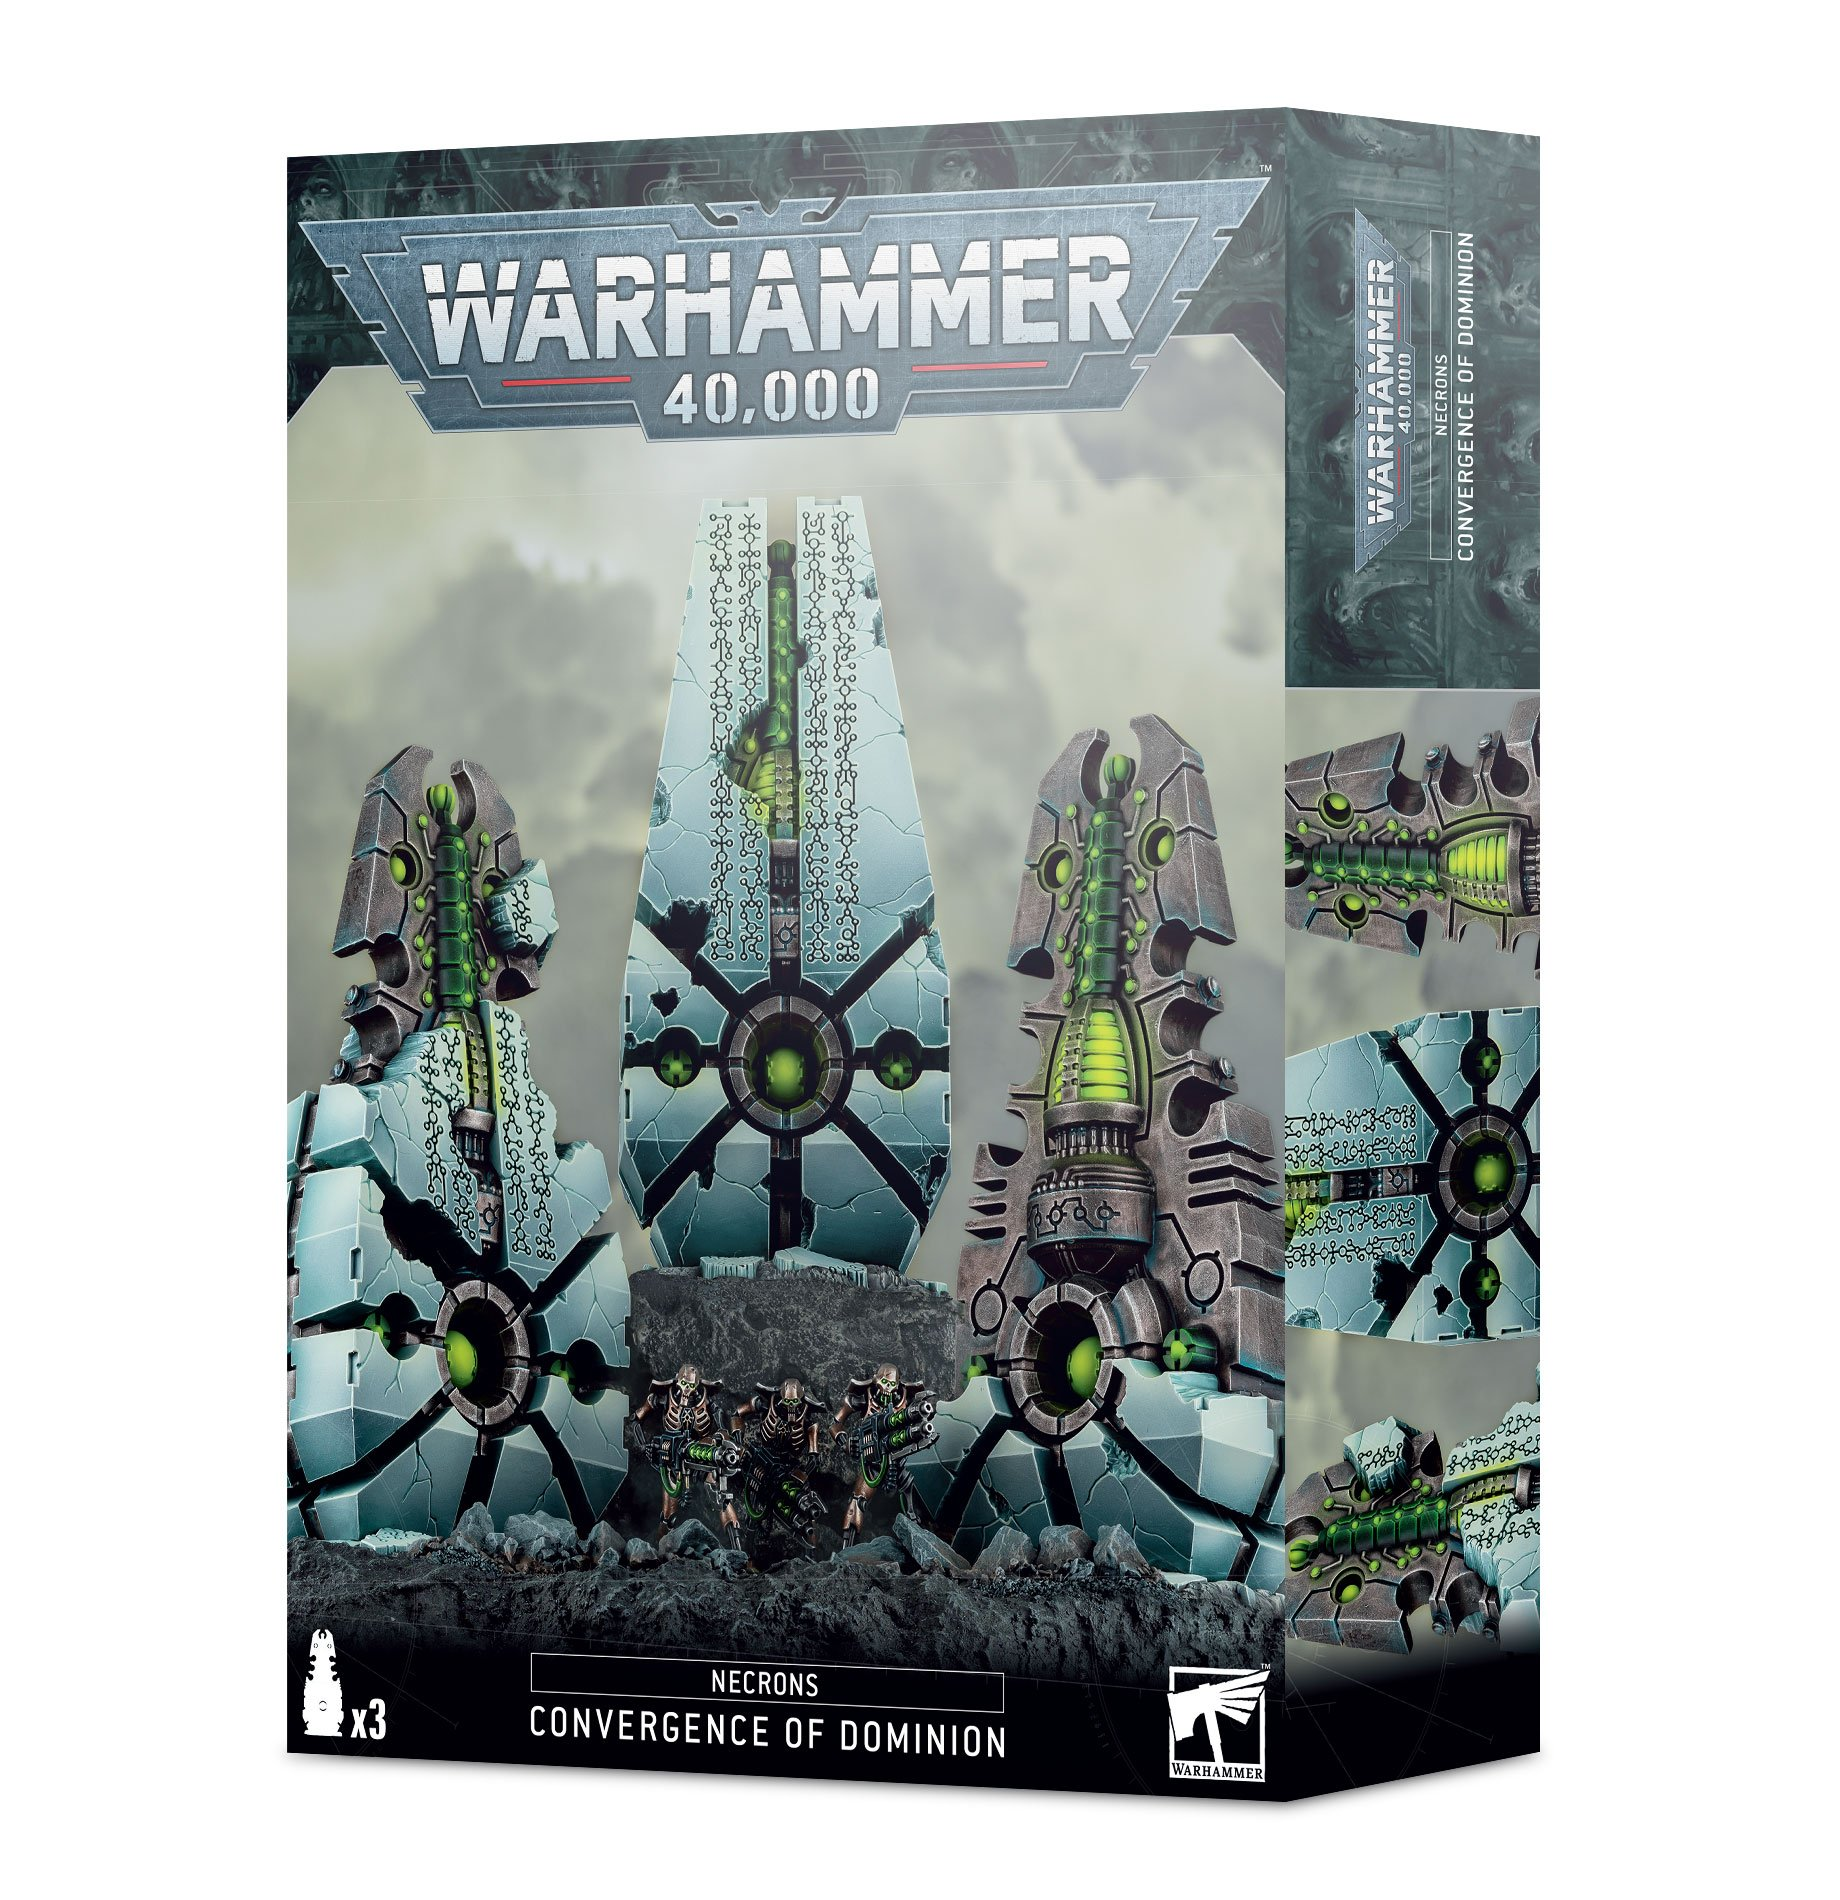 Warhammer 40,000: Necrons: Convergence of Dominion